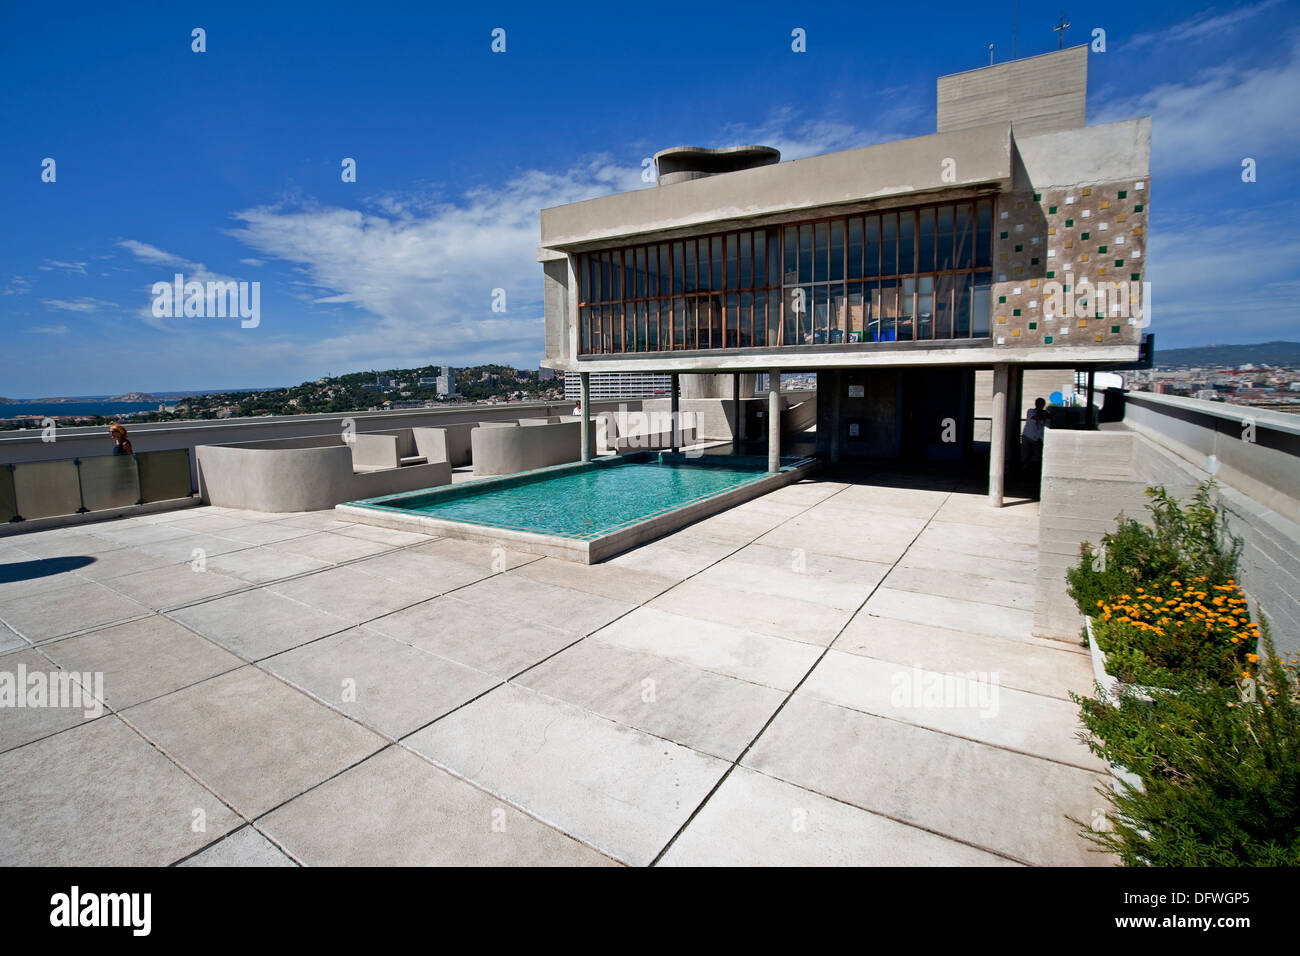 The roof top view of water and terrace on the modernist residential housing The Unité d'Habitation designed - Stock Image